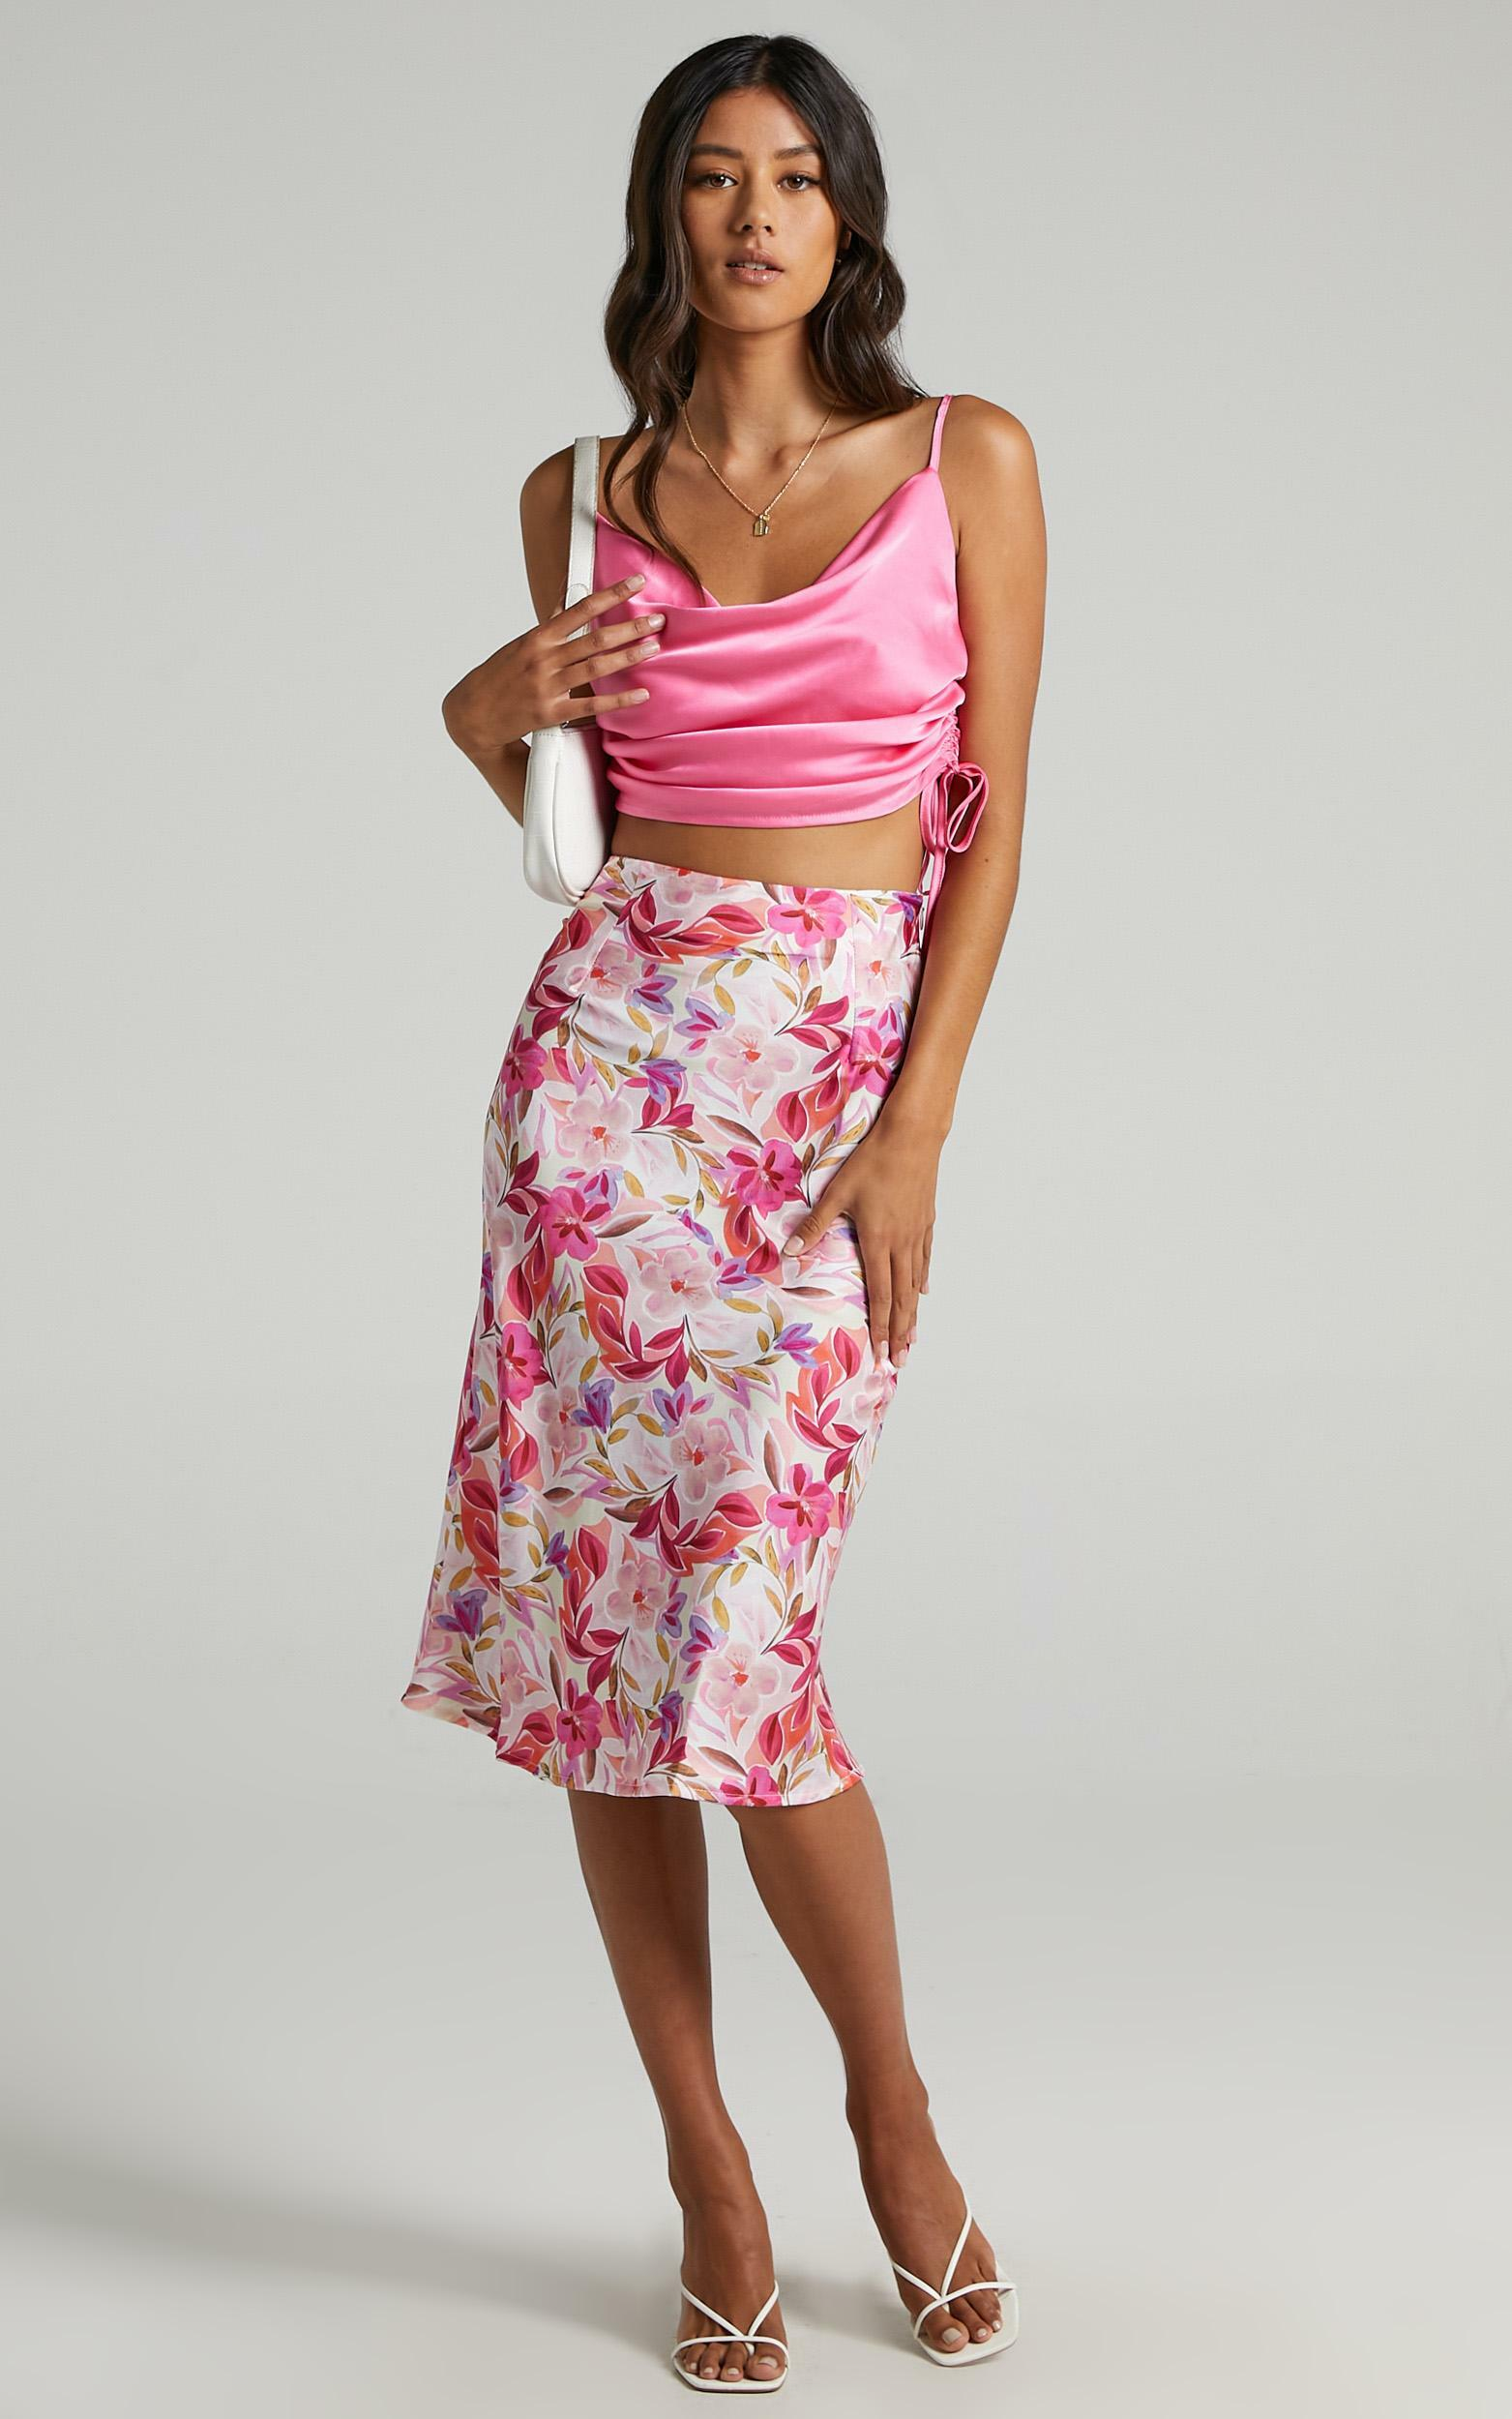 Creating Art Skirt in Eventful Bloom - 6 (XS), PNK1, hi-res image number null